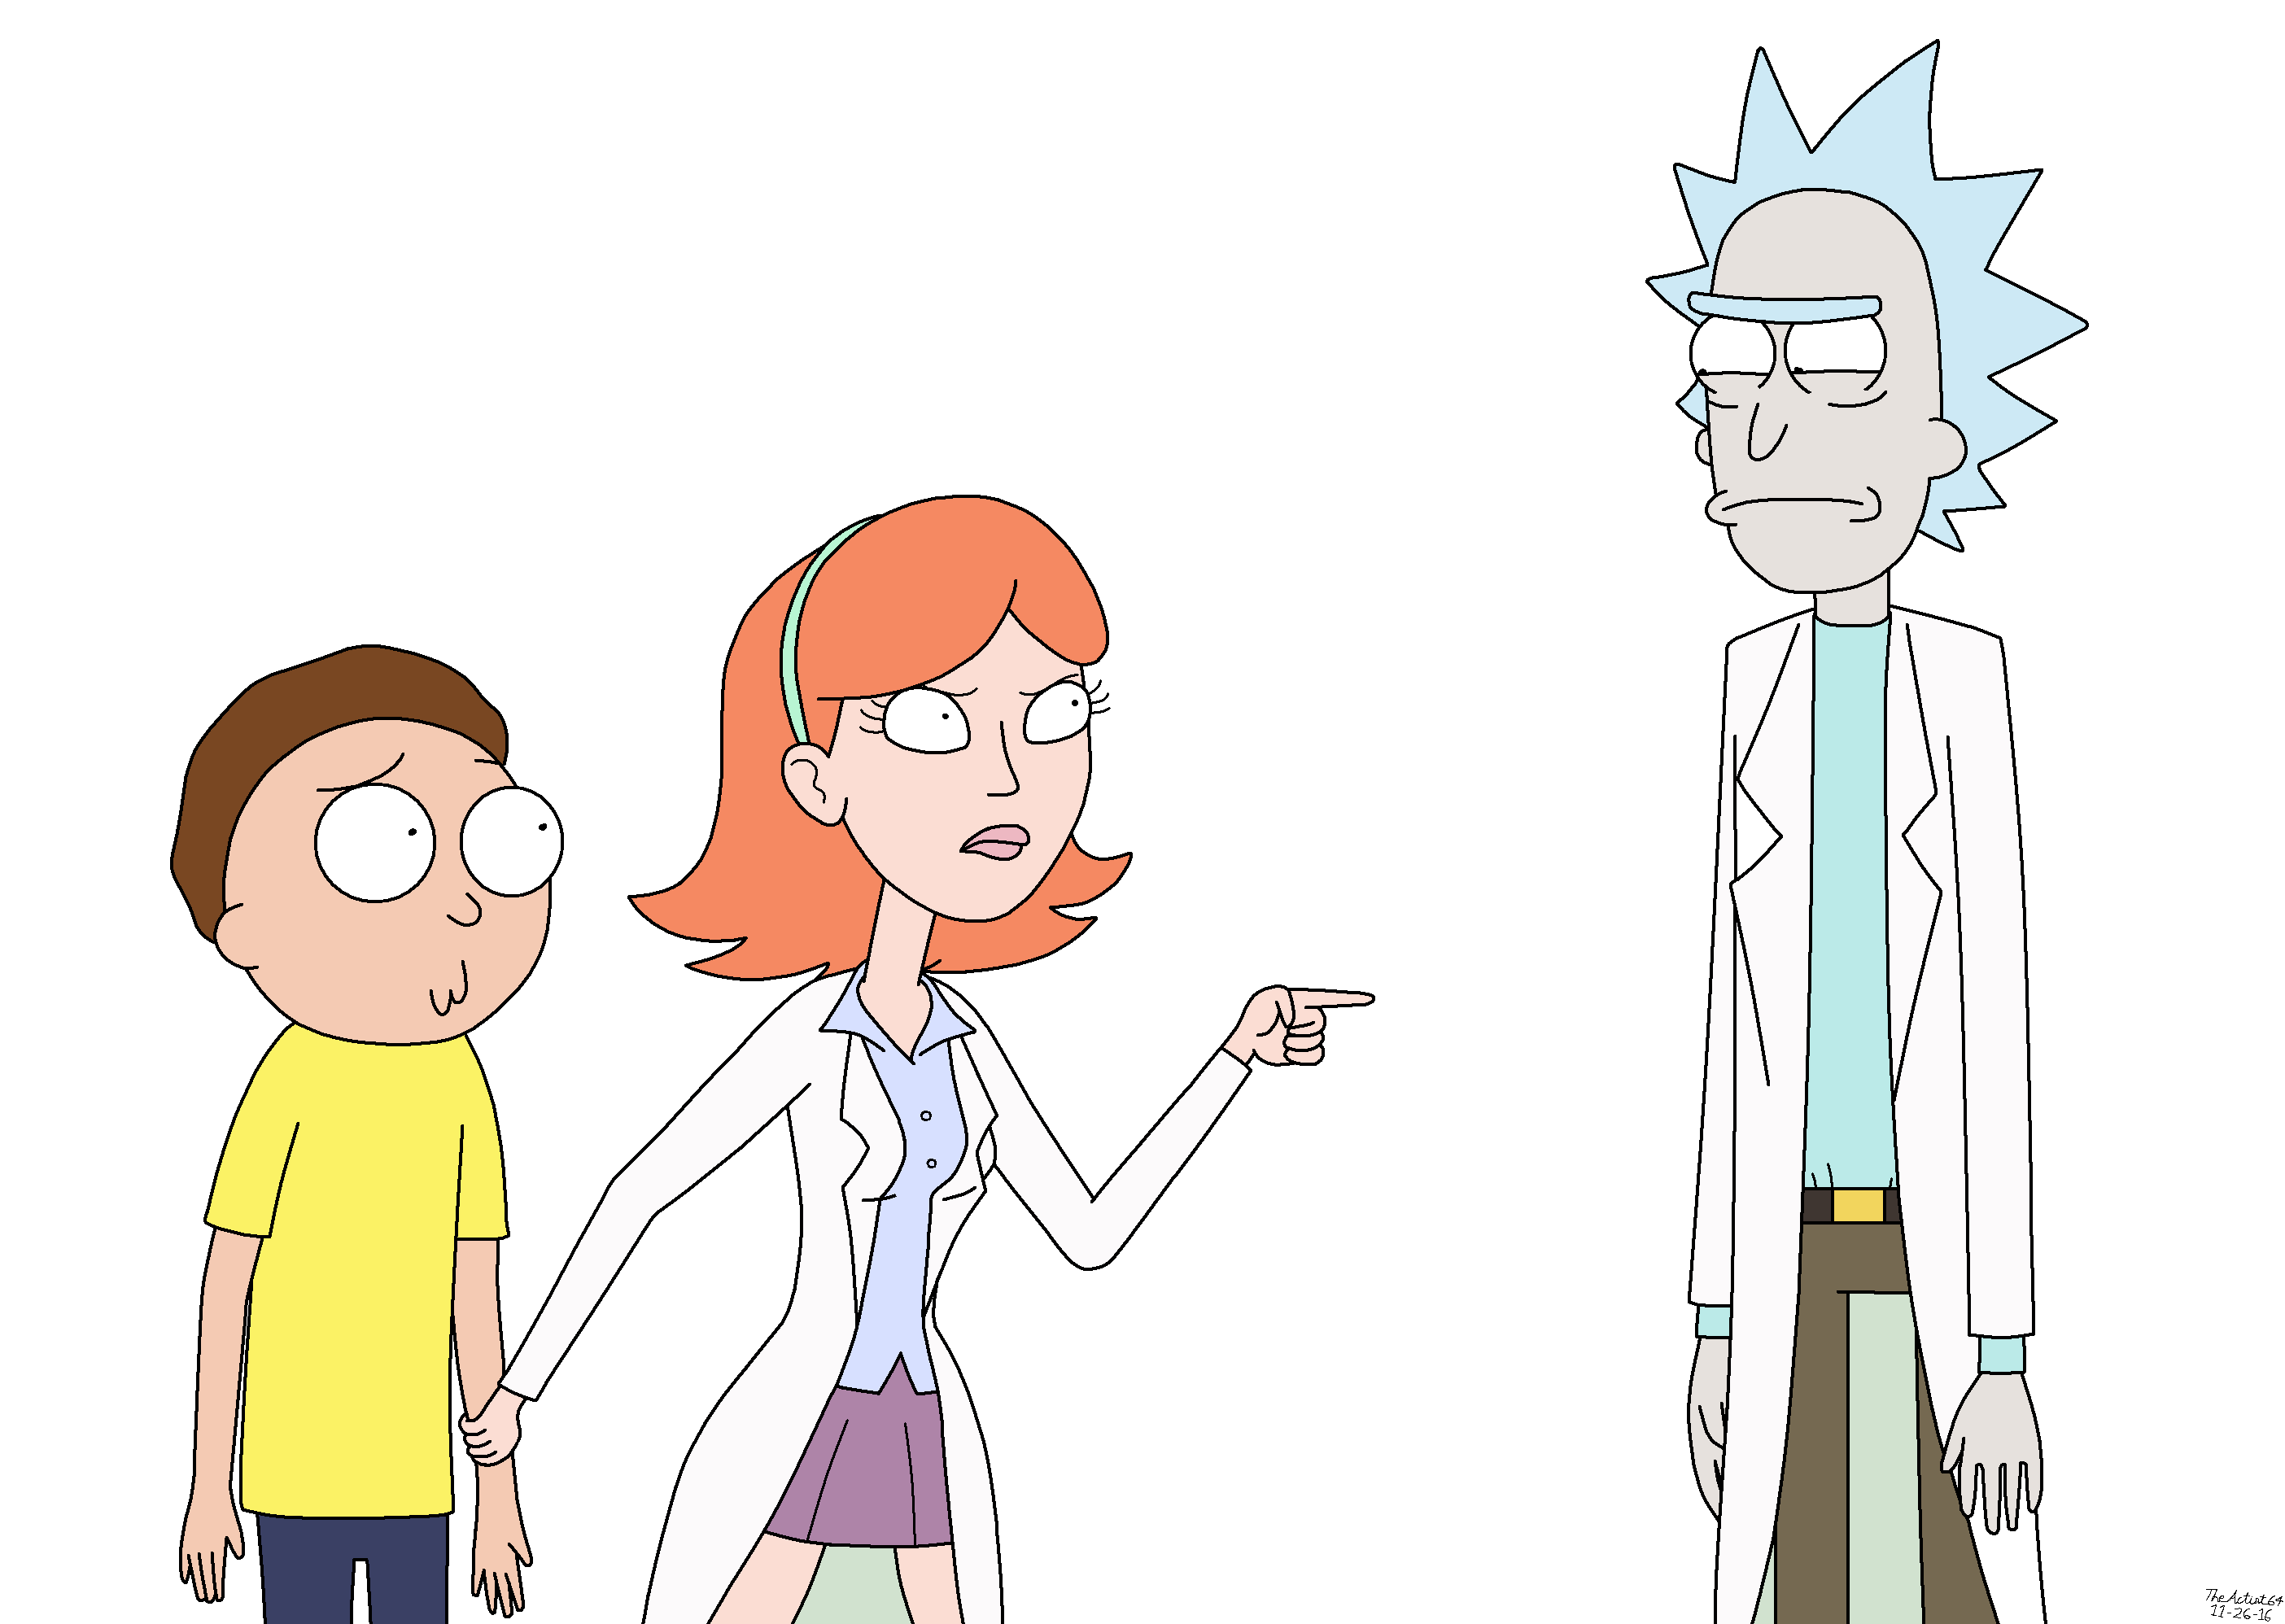 Rick y morty vector png. Image s e beth